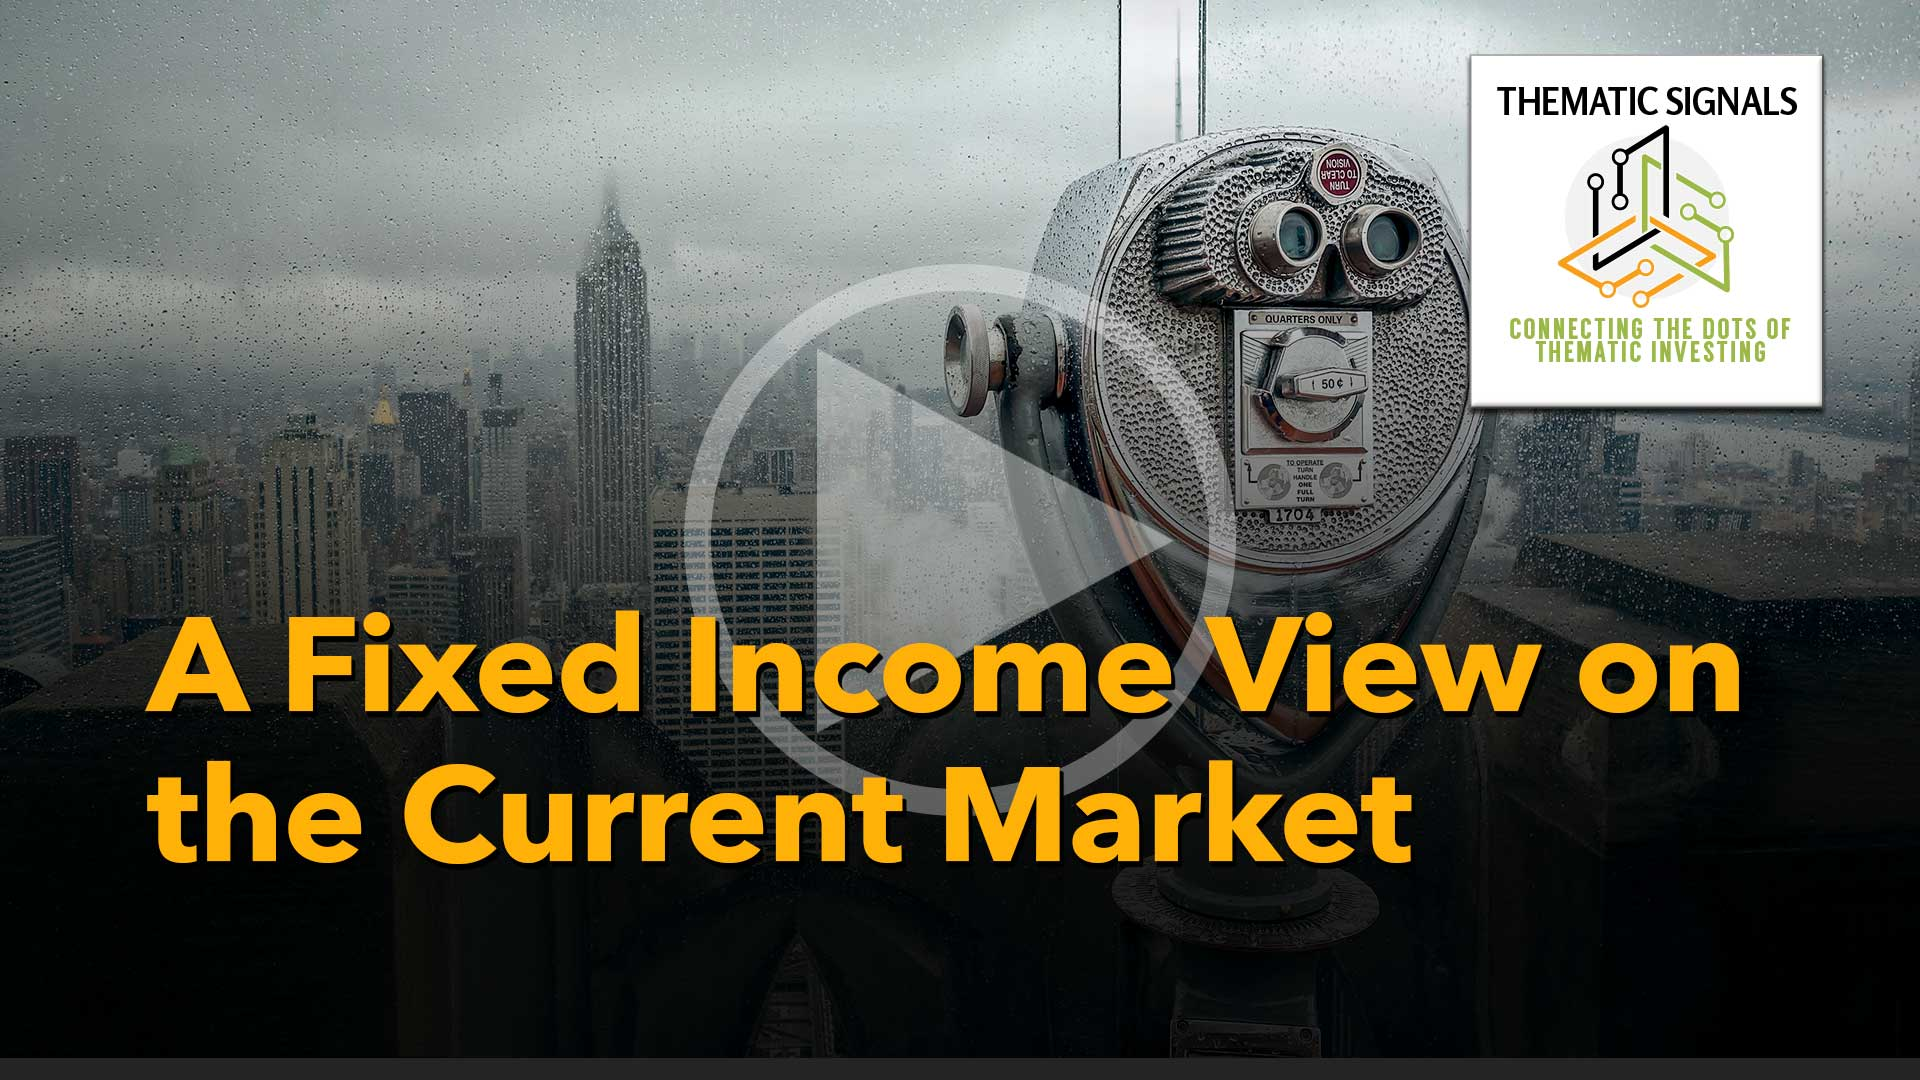 Thematic Signals Podcast: Fixed Income View of Today's Market